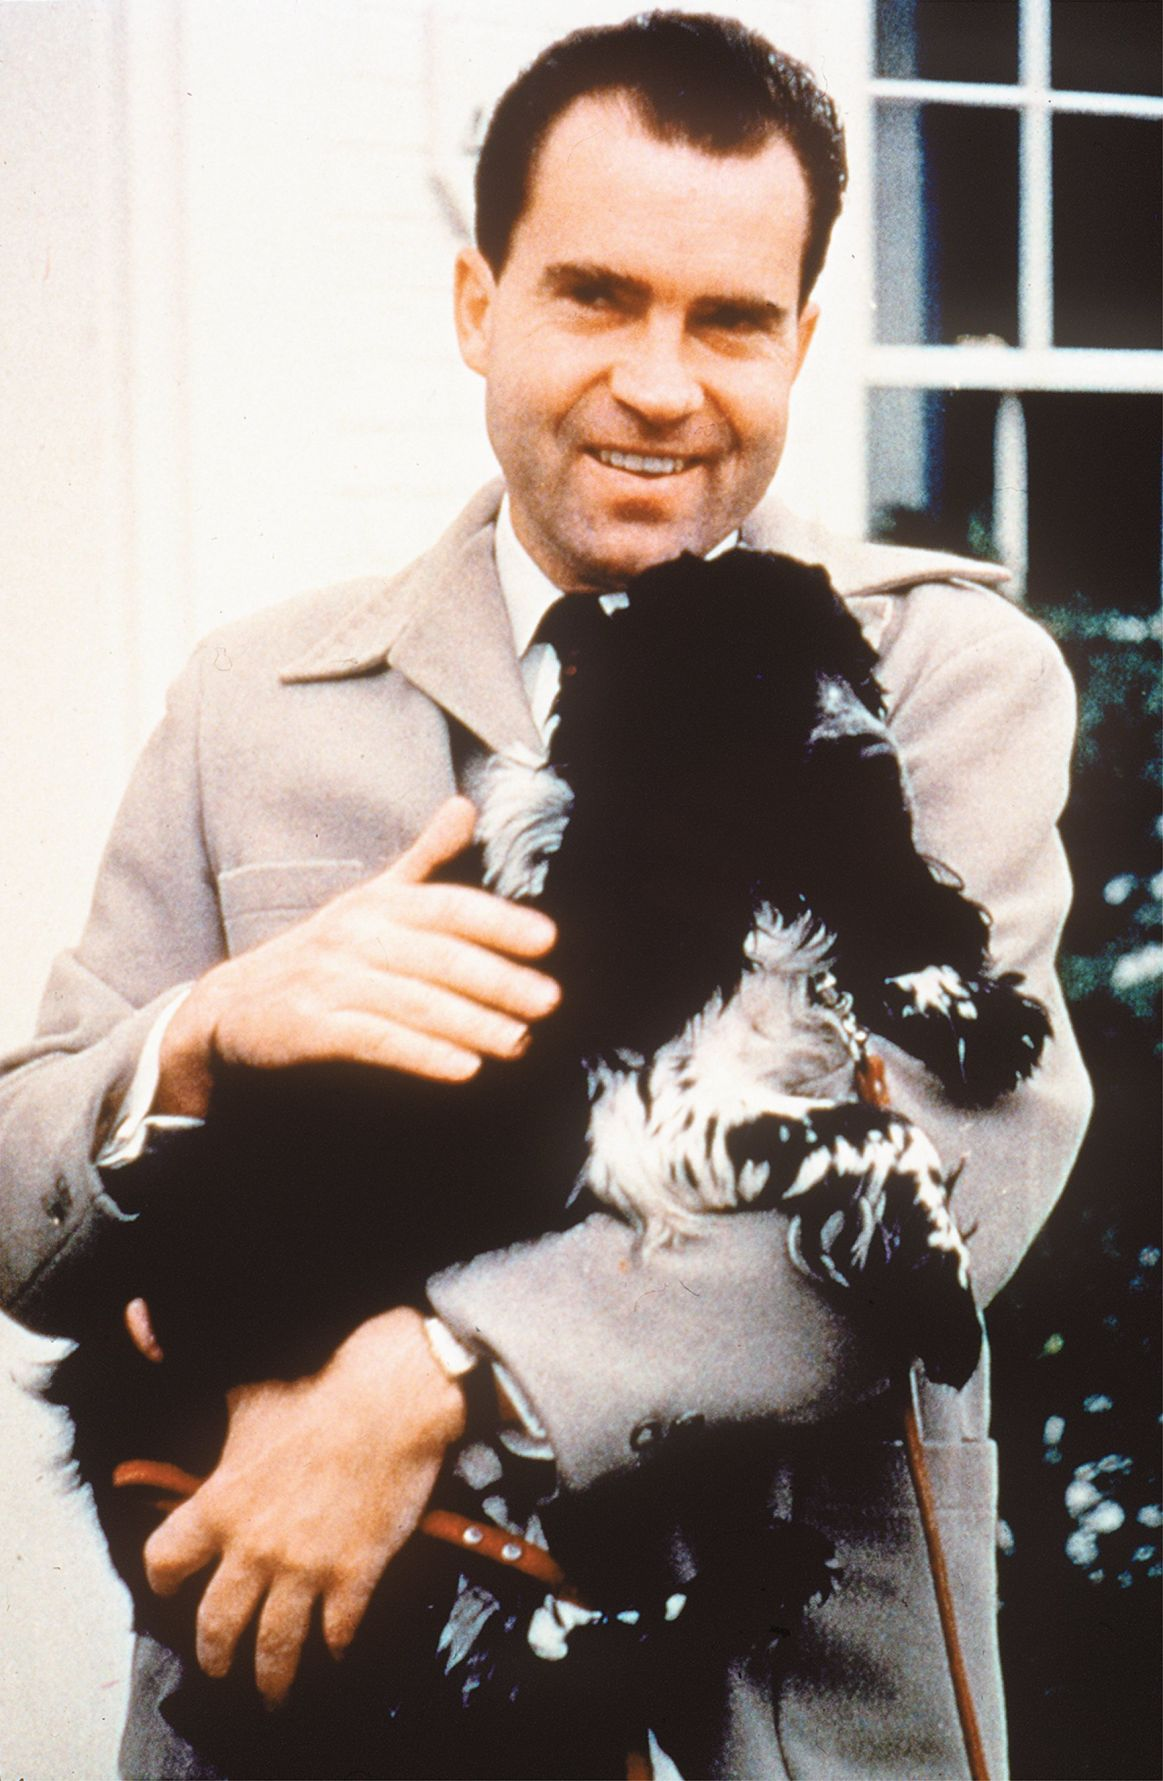 Richard Nixon with Checkers, his cocker spaniel, on July 2, 1959.